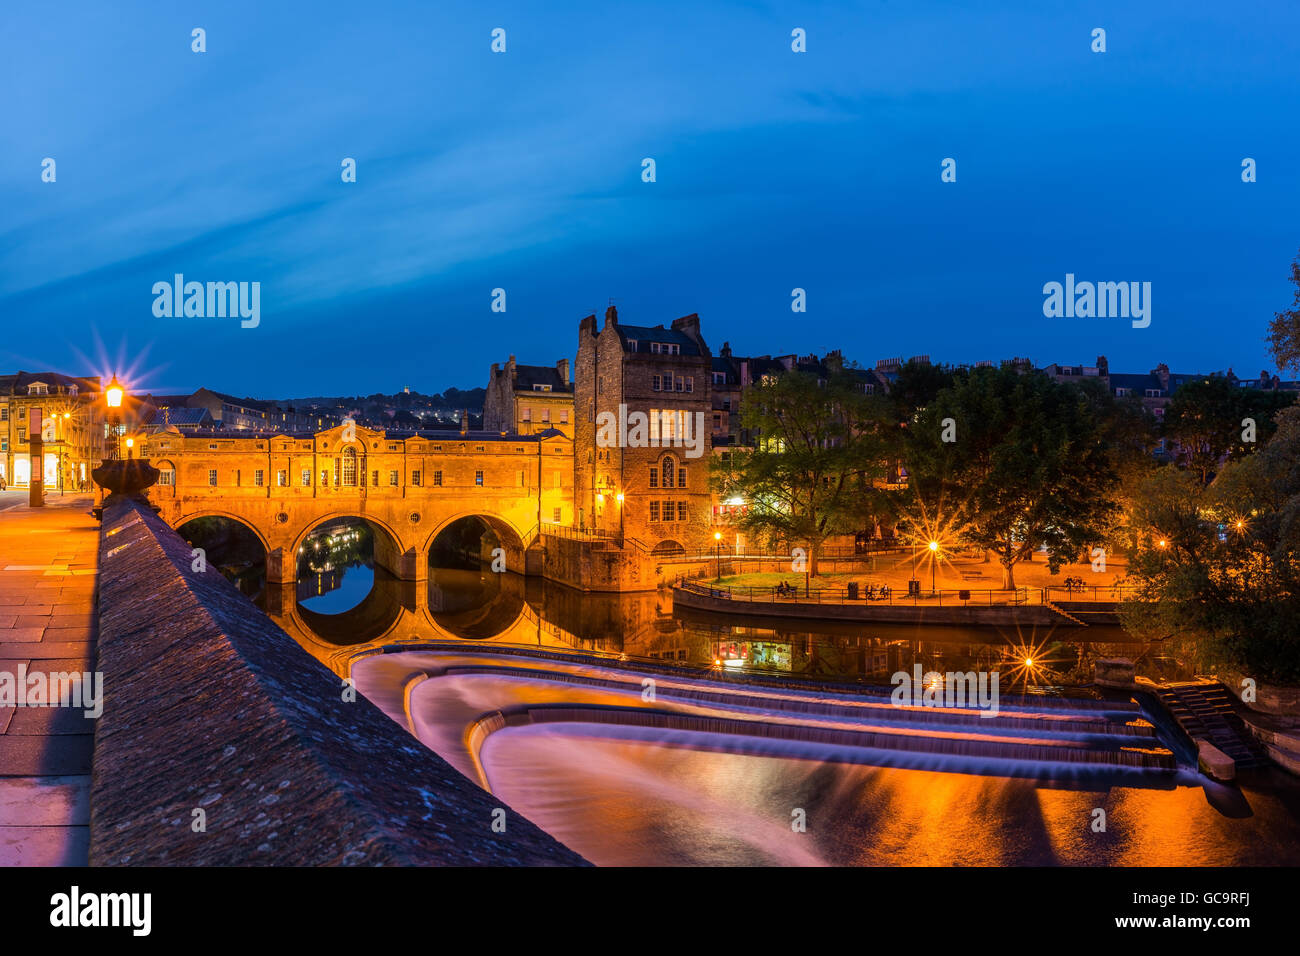 Bath and River Avon - Stock Image